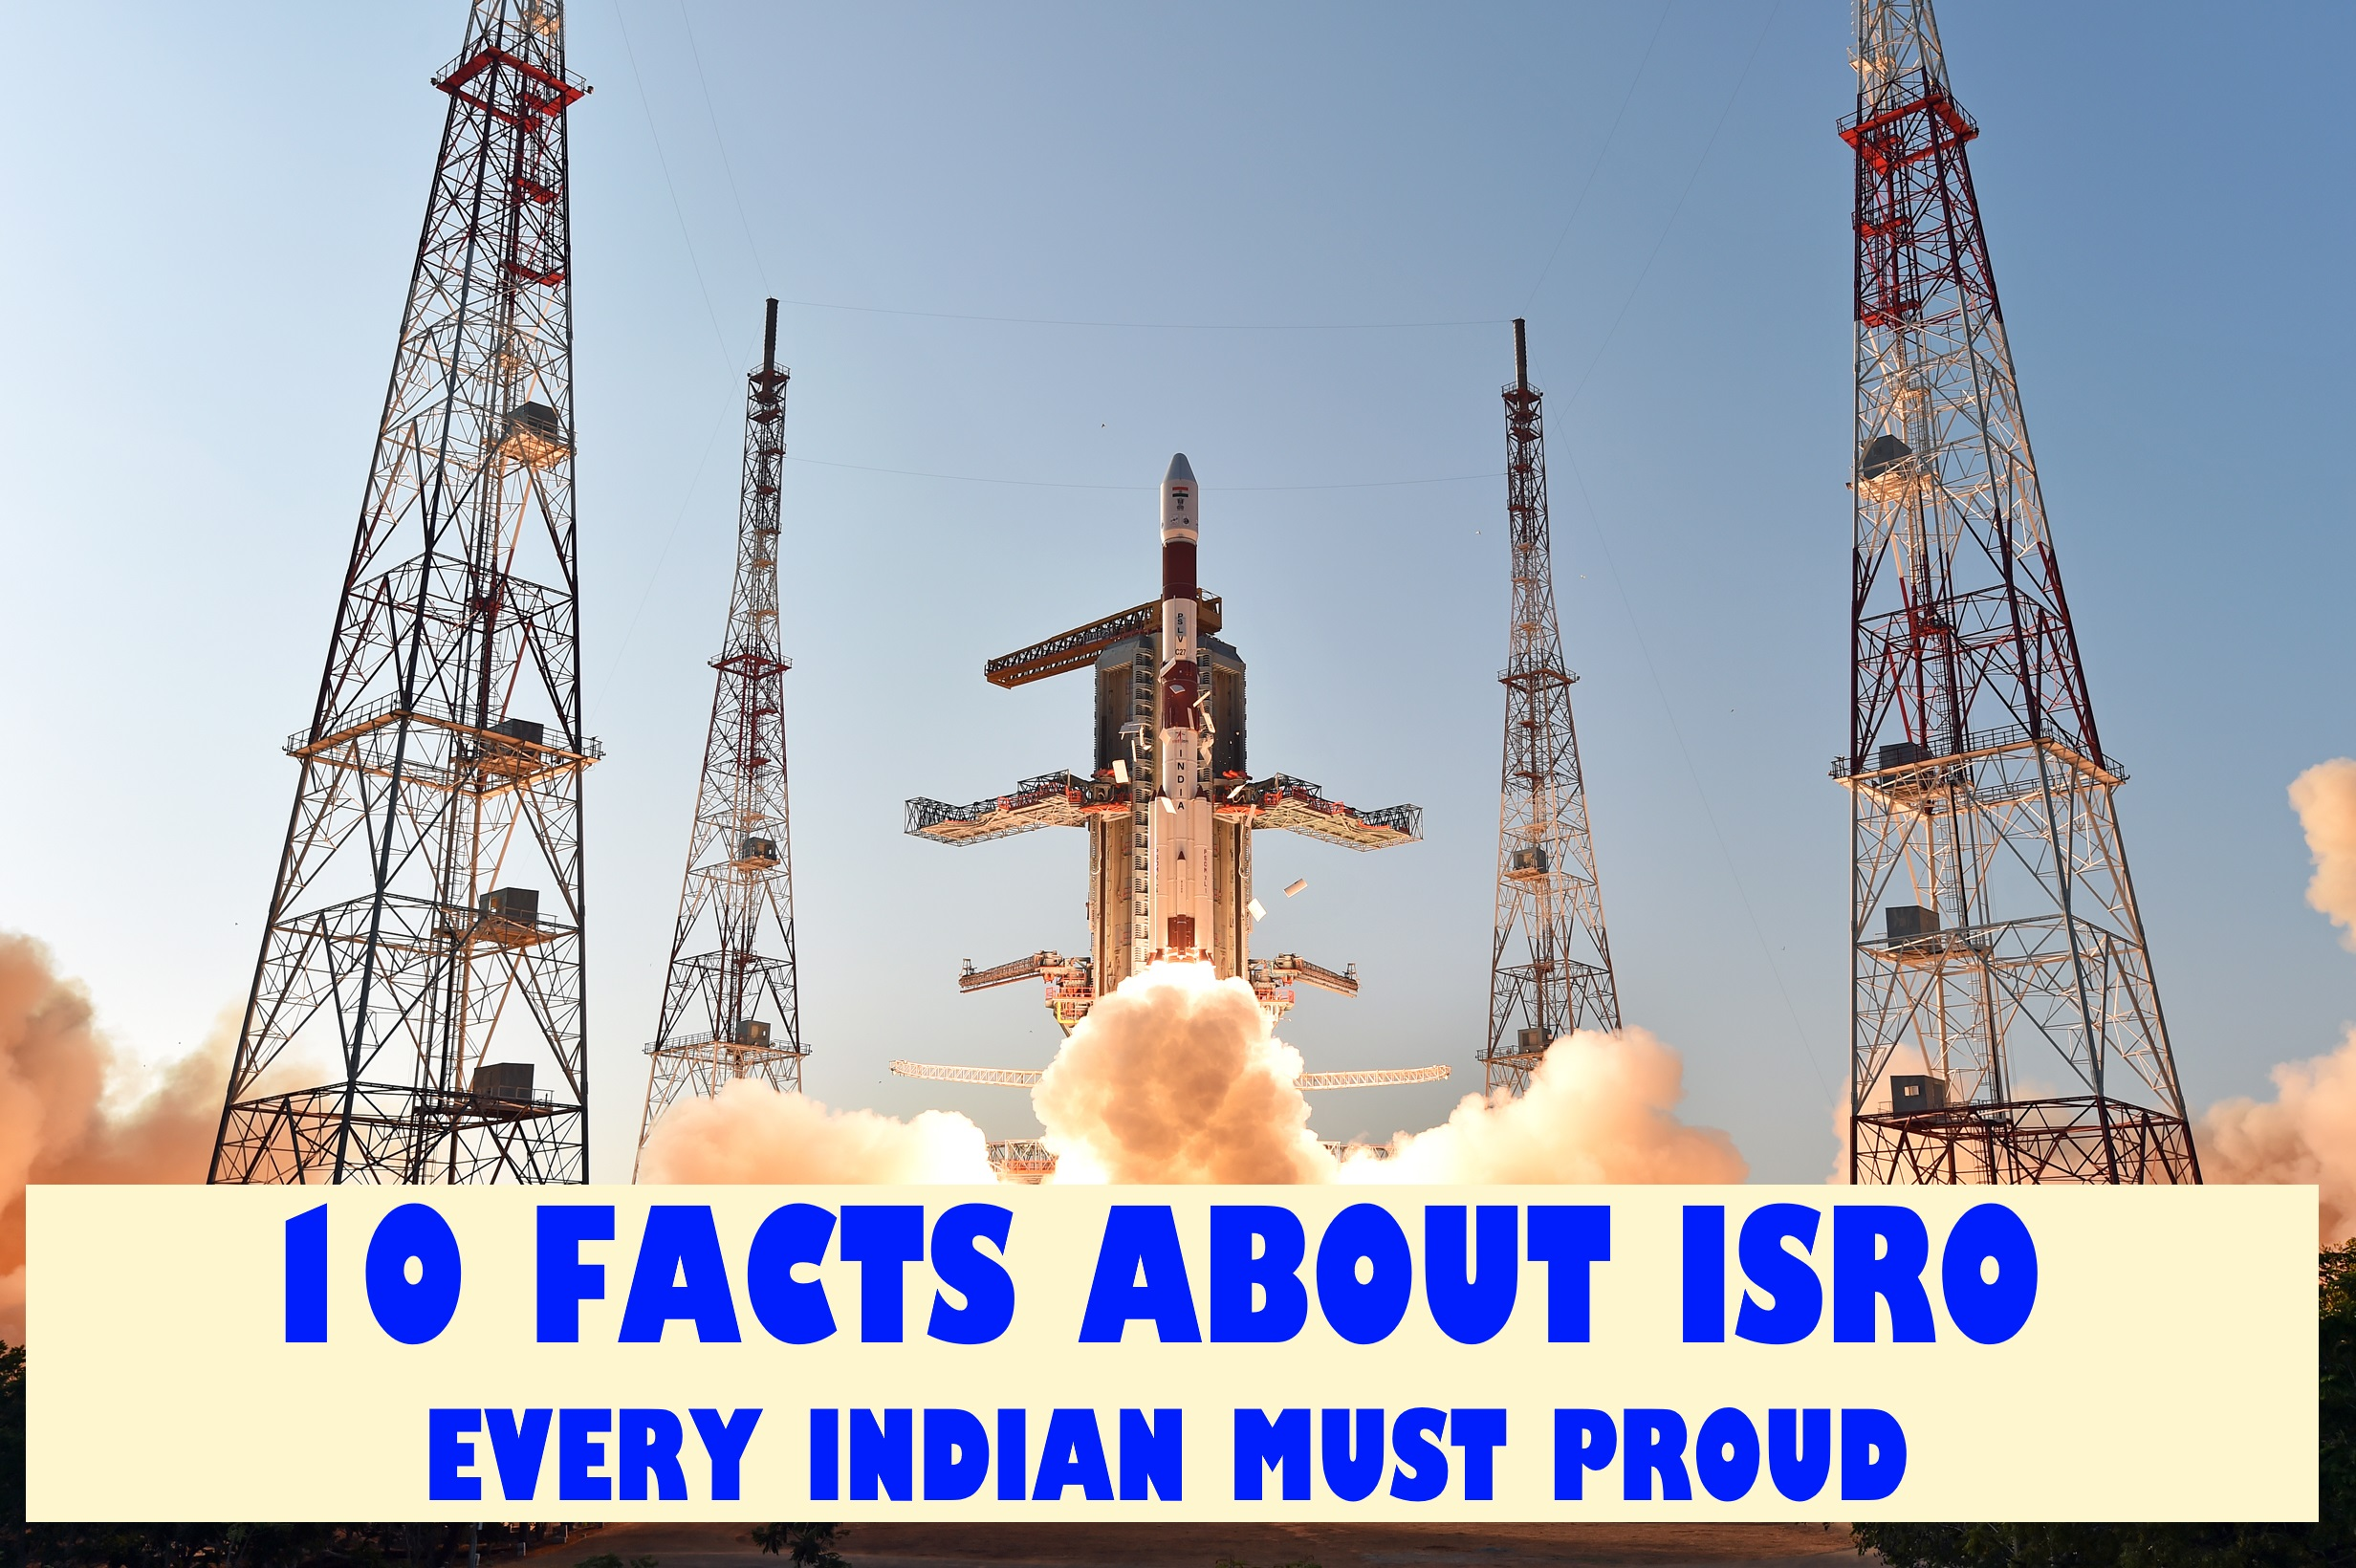 Isro A1facts